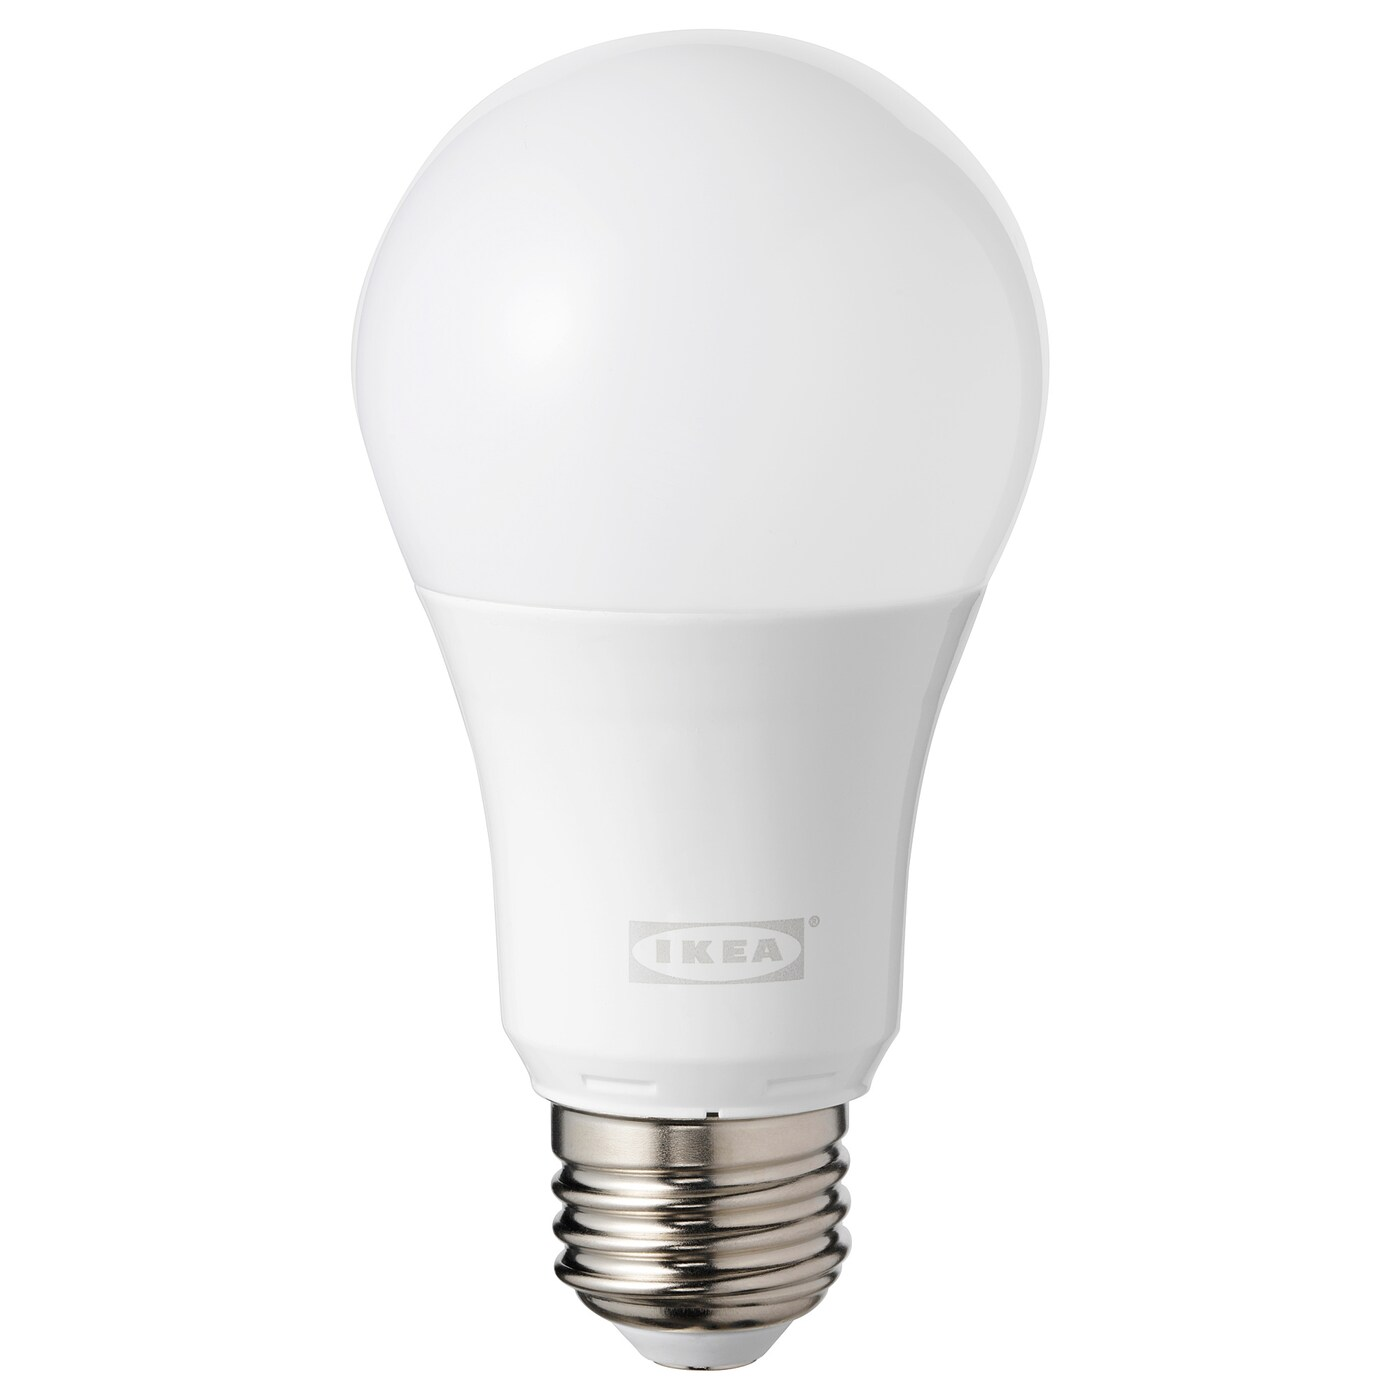 Tradfri LED bulb E26 600lm, dimmable color and white spectrum opal